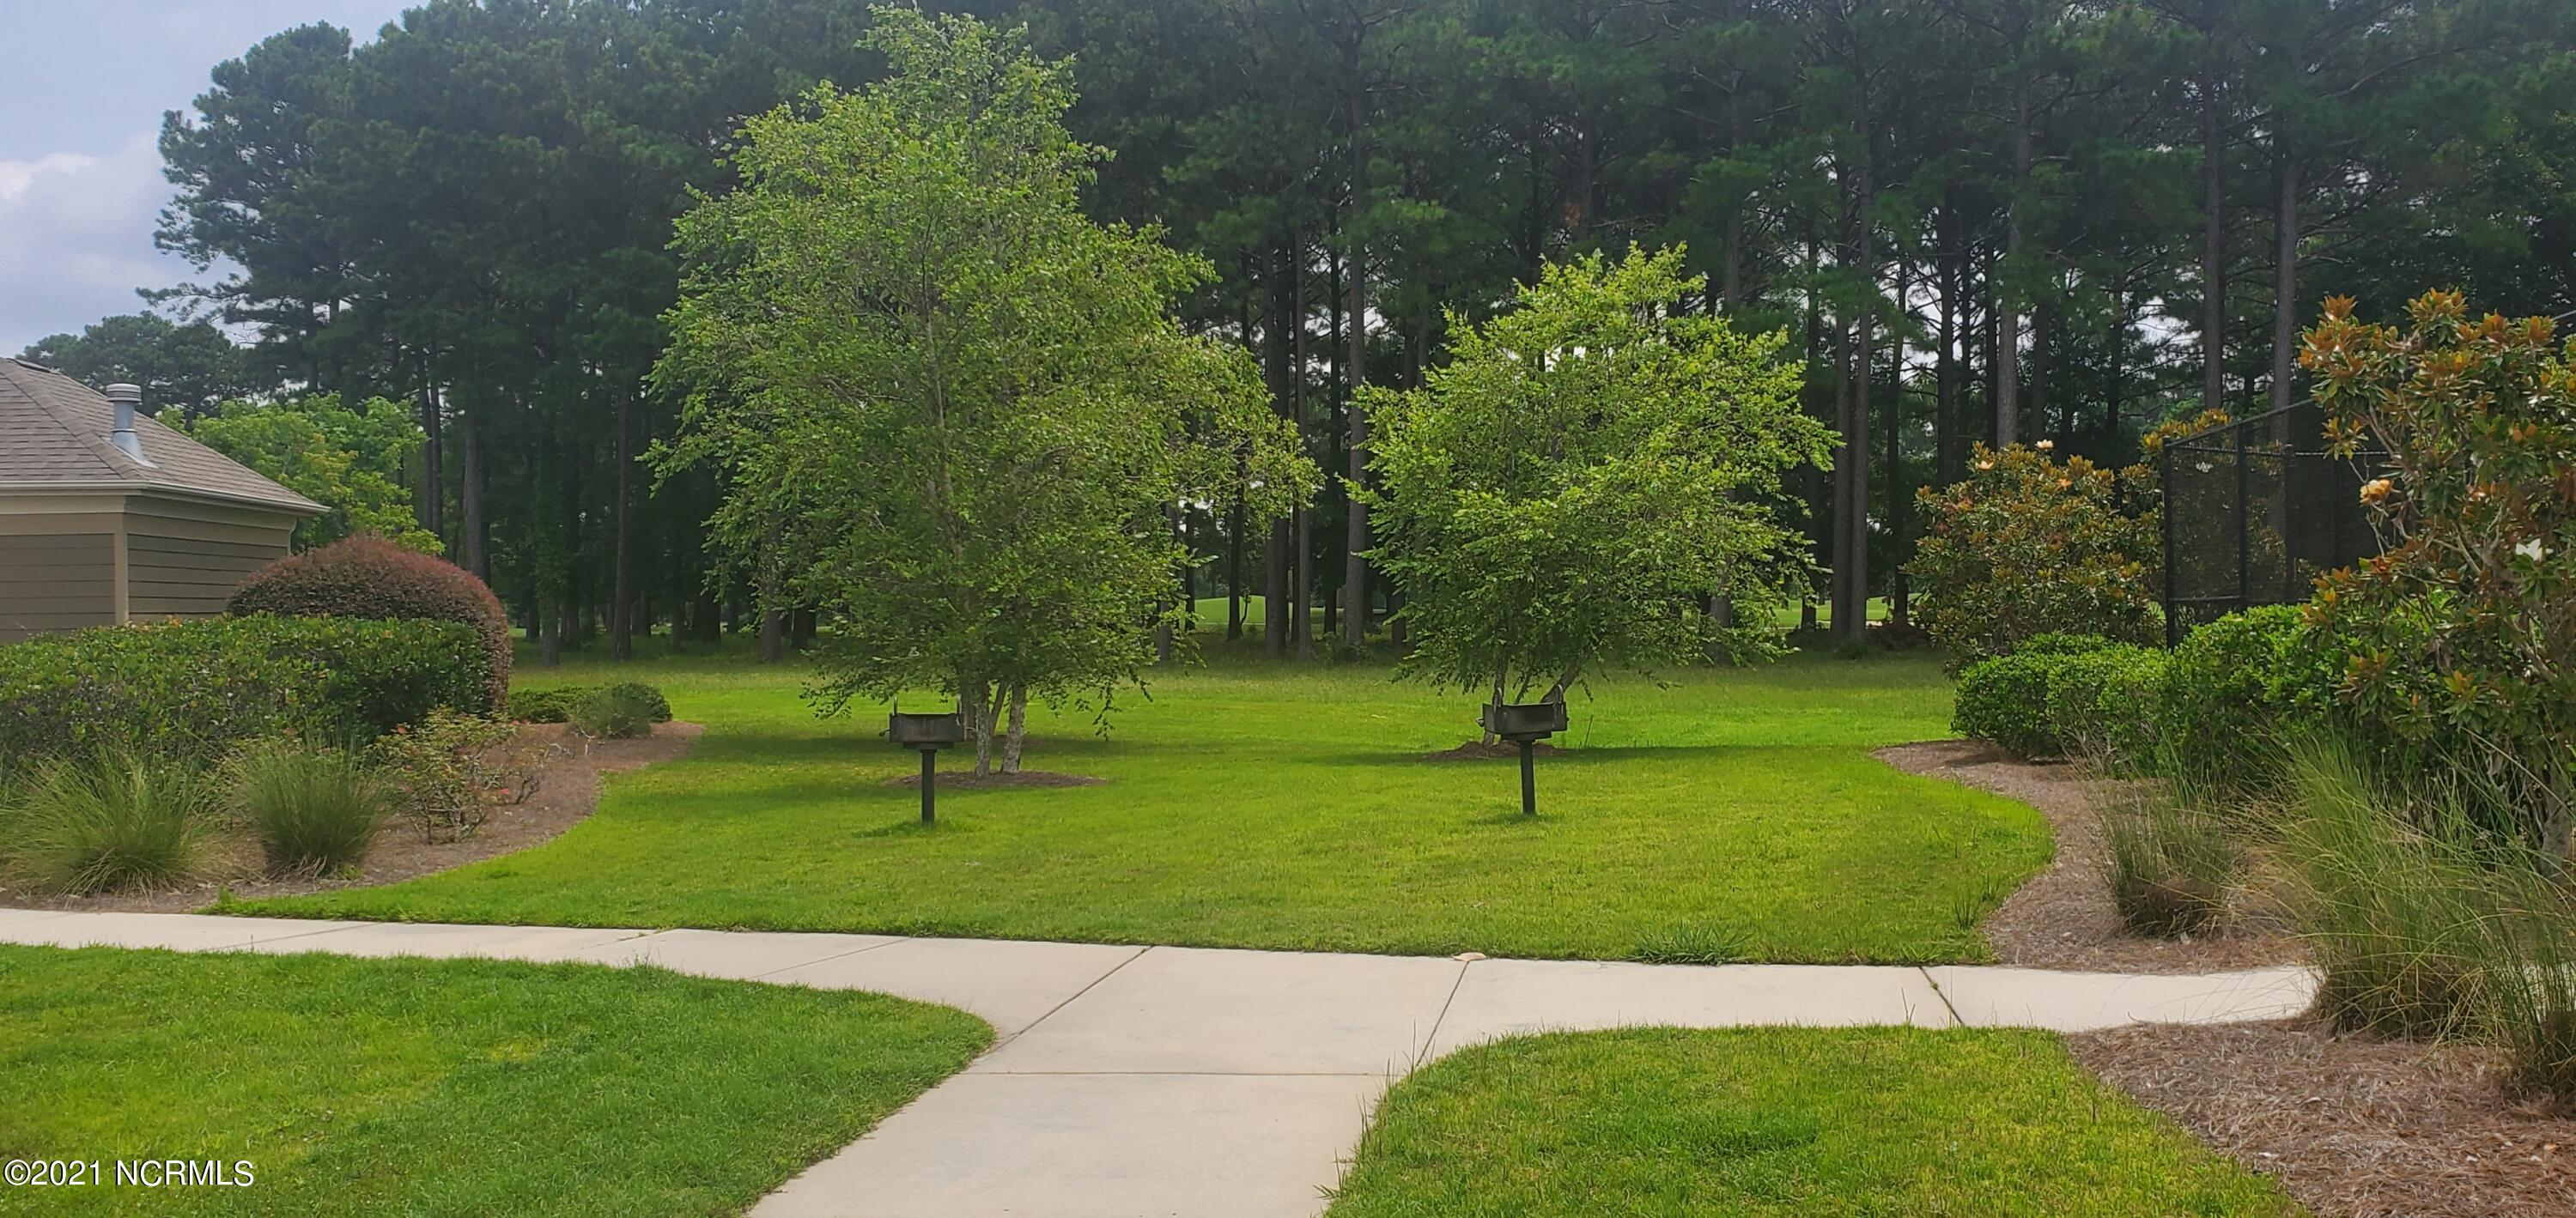 9291 Oldfield Road, Calabash, North Carolina 28467, ,Residential land,For sale,Oldfield,100284547